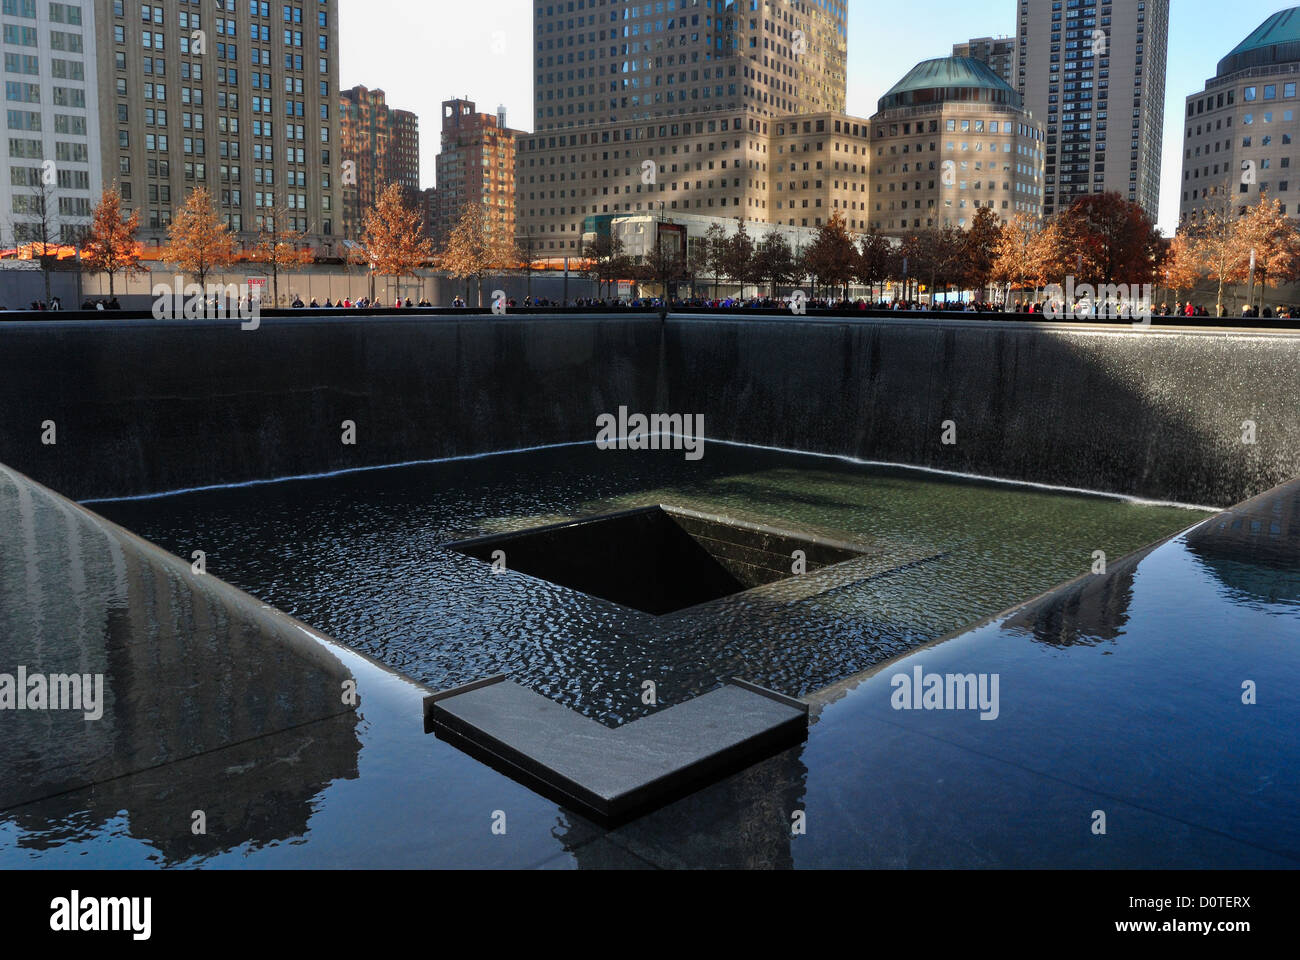 South reflecting pool and surrounding buildings, 9/11 Memorial, New York City.. - Stock Image